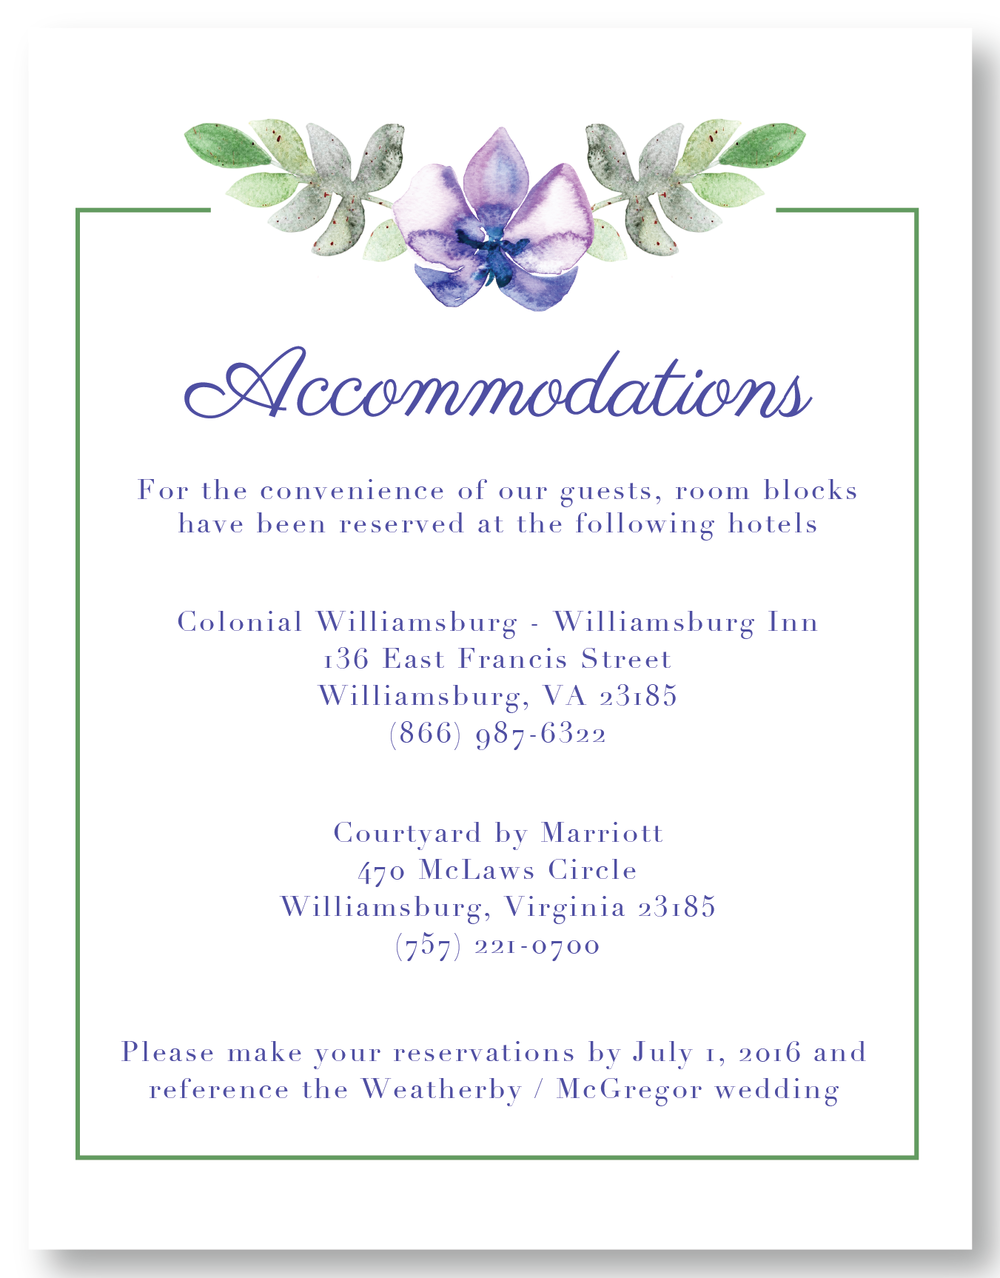 The Williamsburg - Accommodation Card